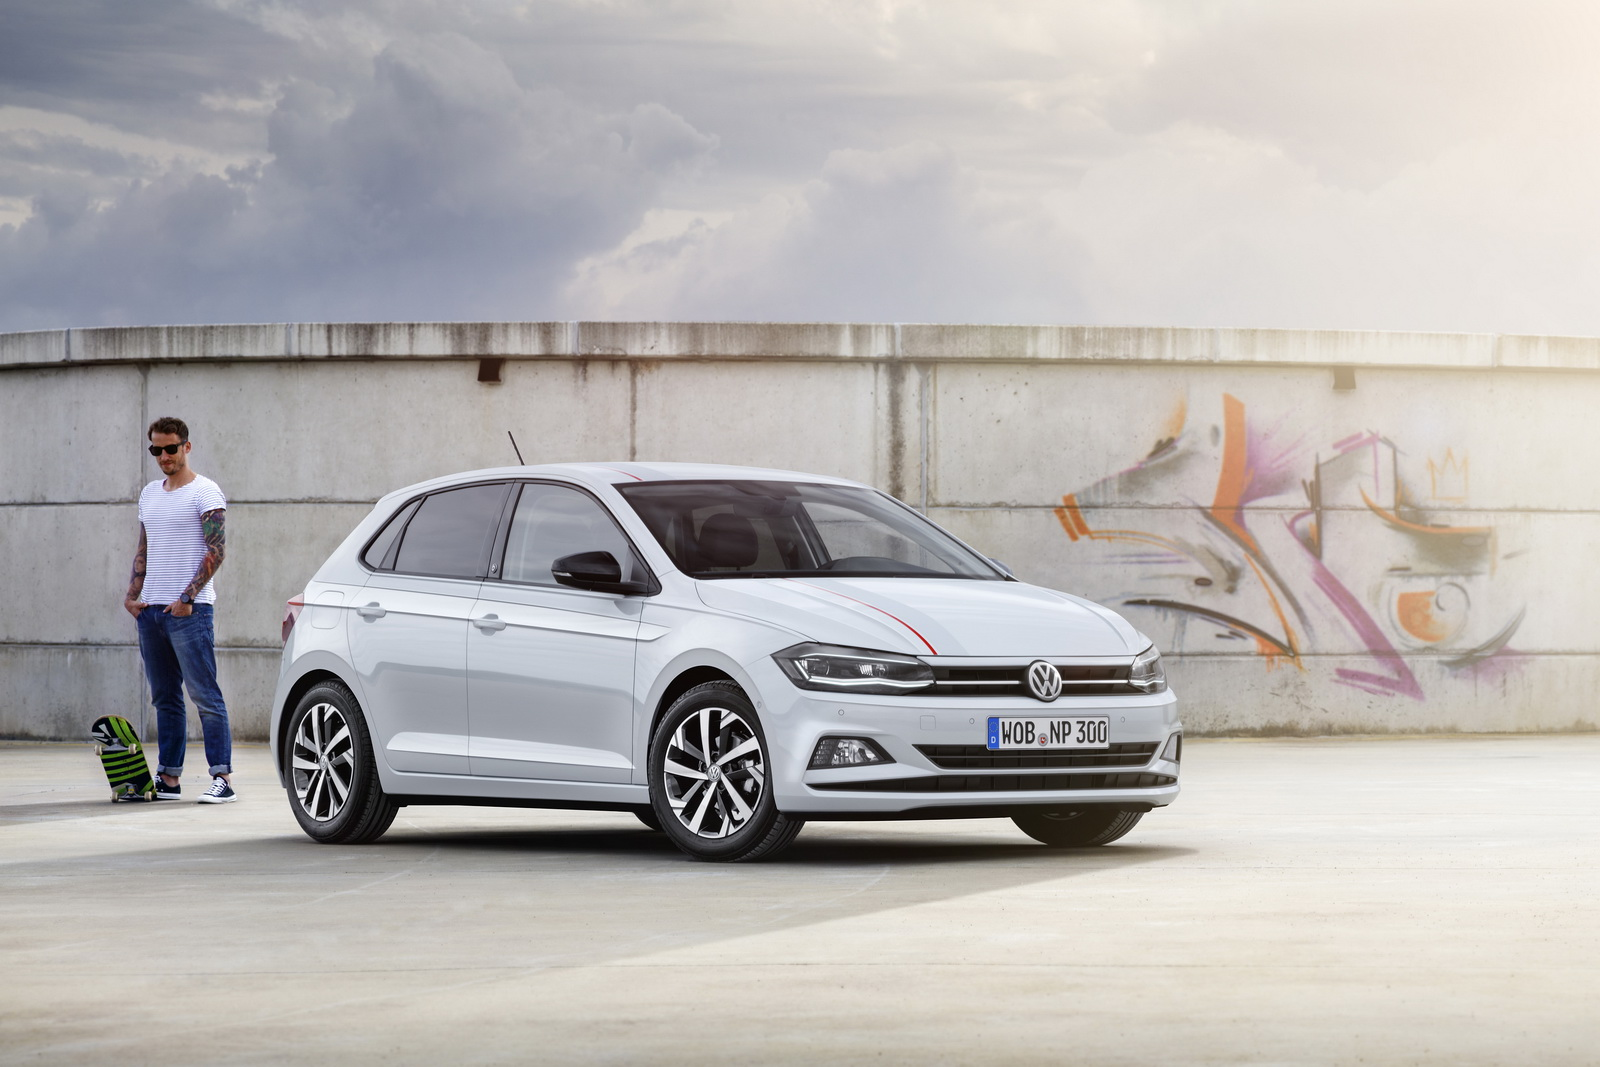 Volkswagen Polo and Polo GTI 2018 (24)